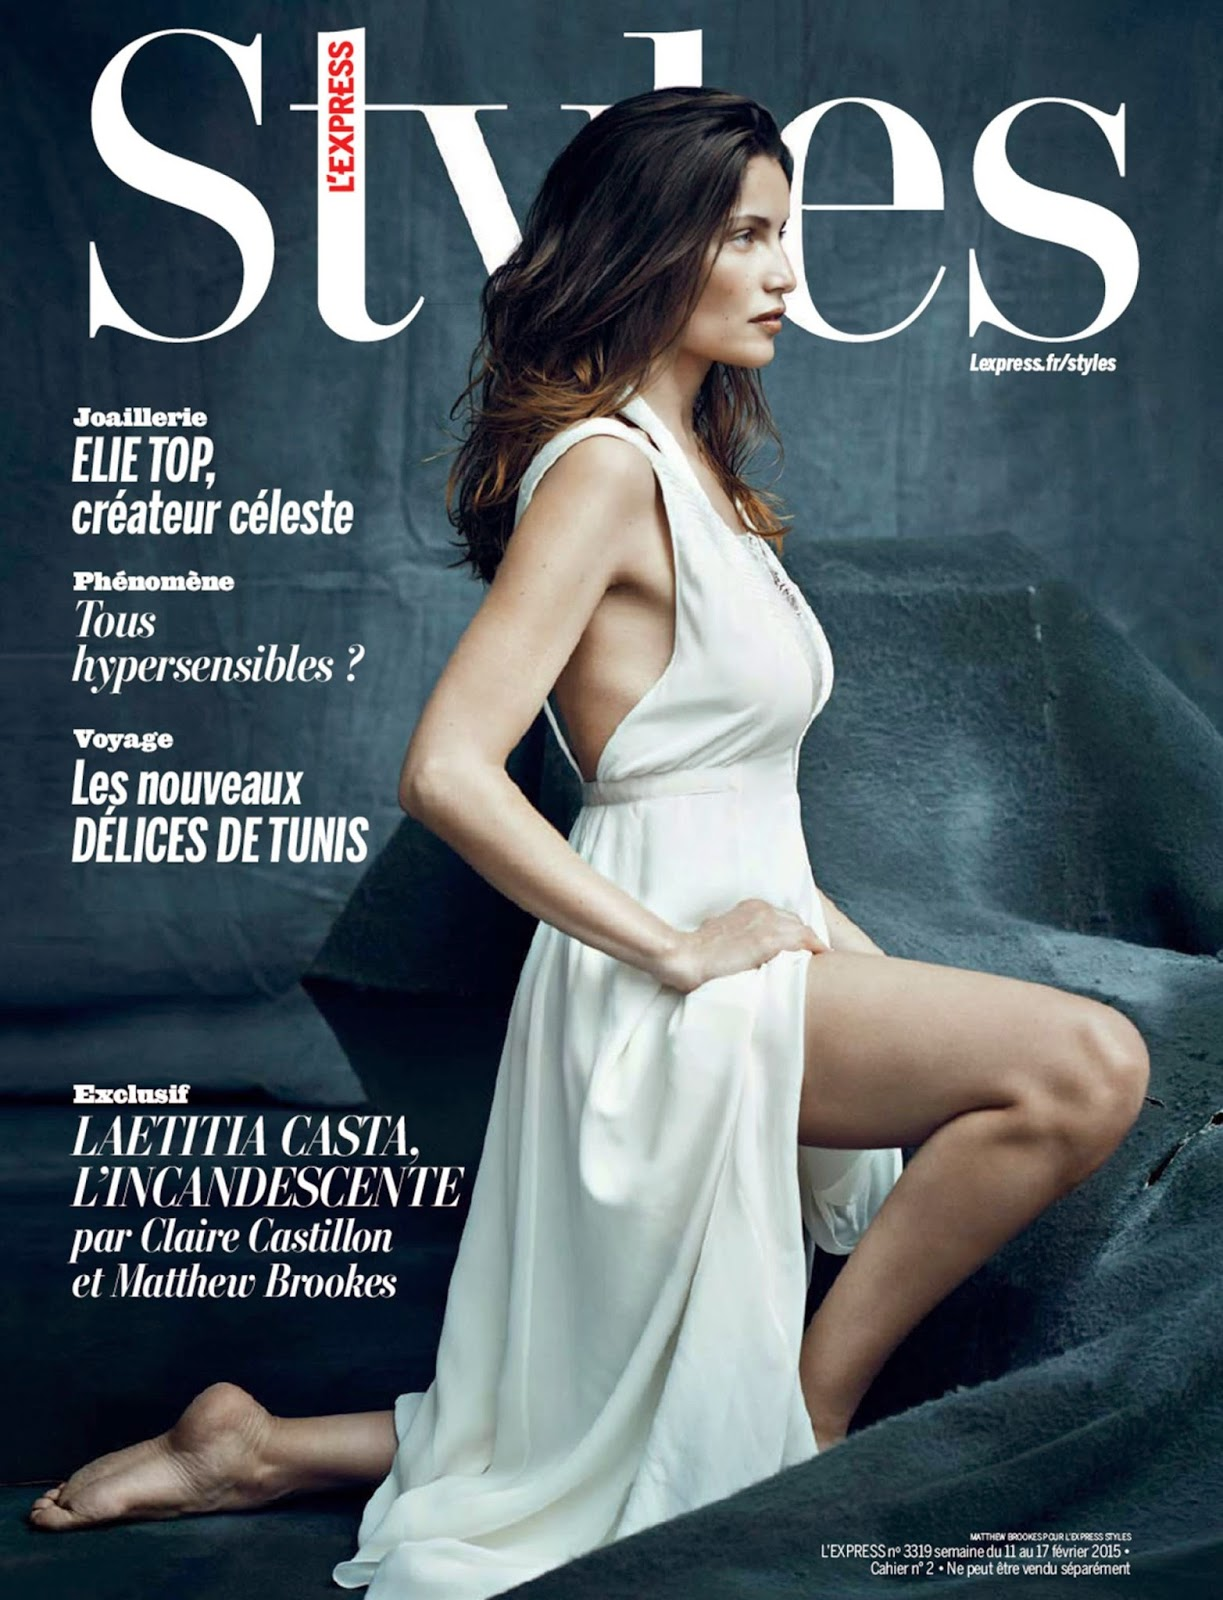 Actress, Supermodel: Laetitia Casta - L'Express Styles France